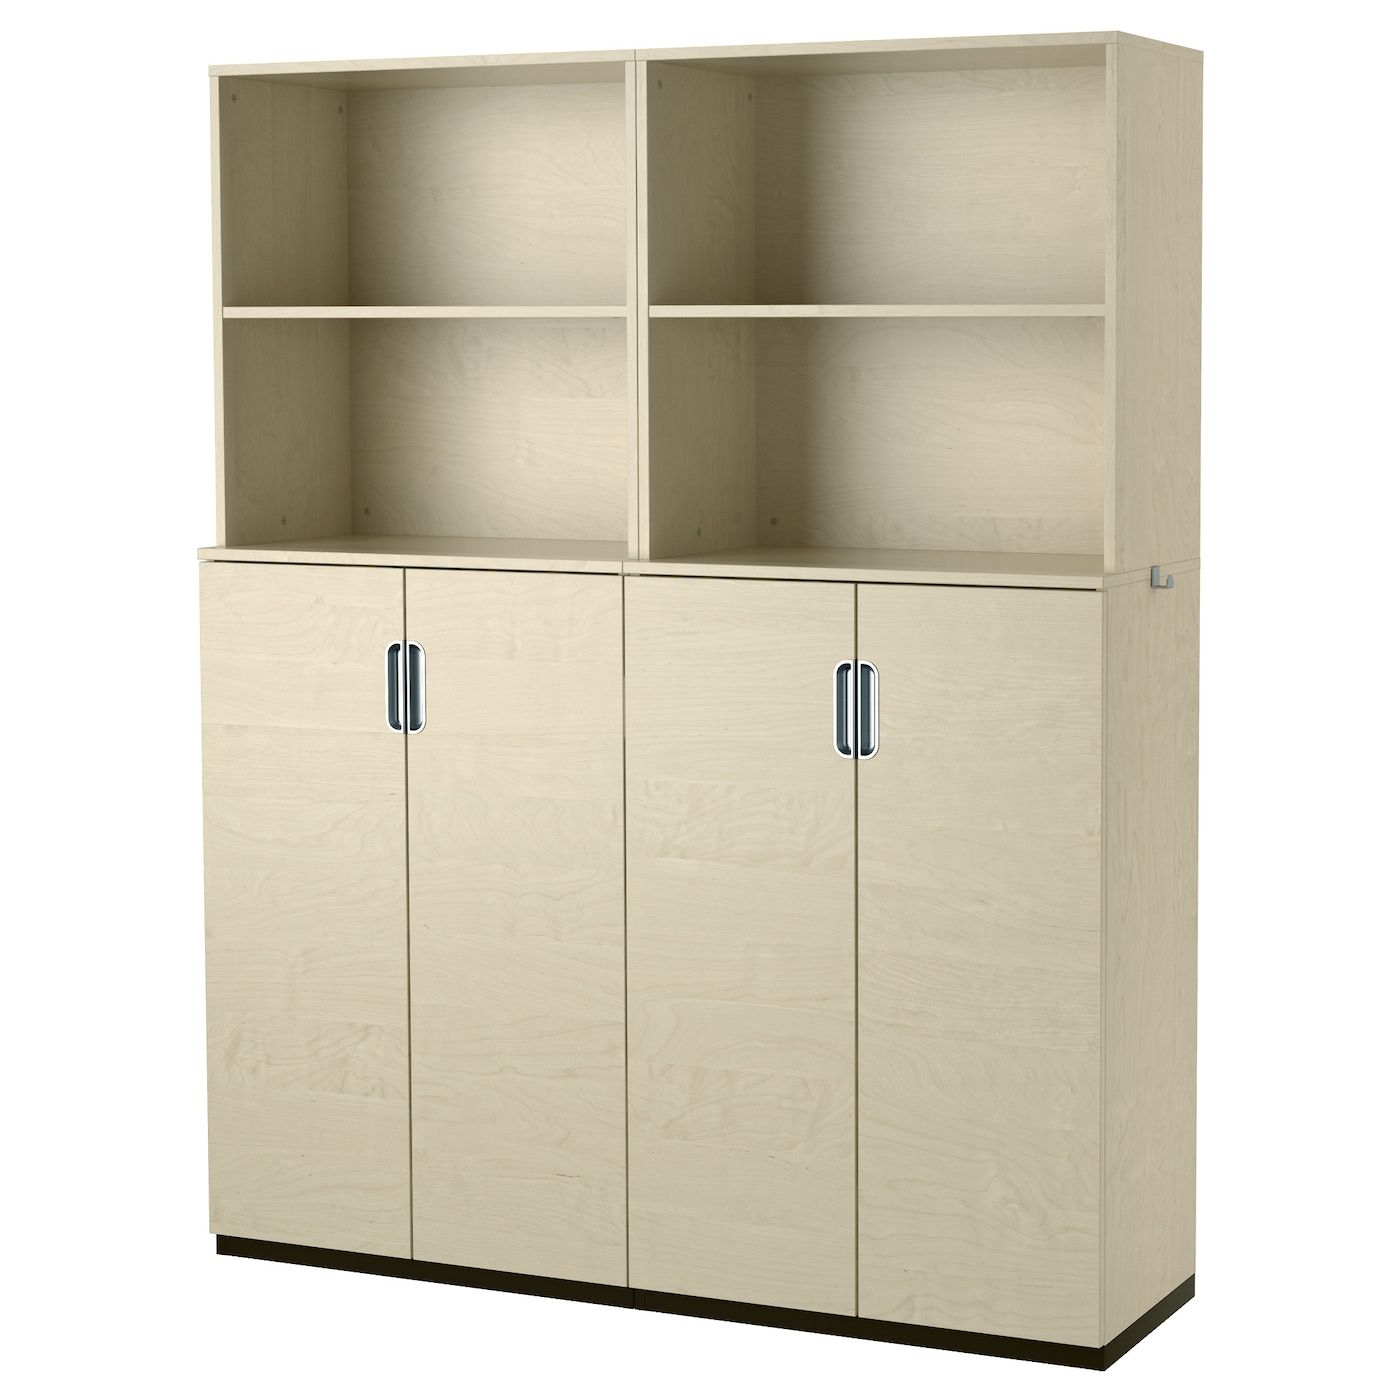 galant storage combination with doors birch veneer 160x200. Black Bedroom Furniture Sets. Home Design Ideas